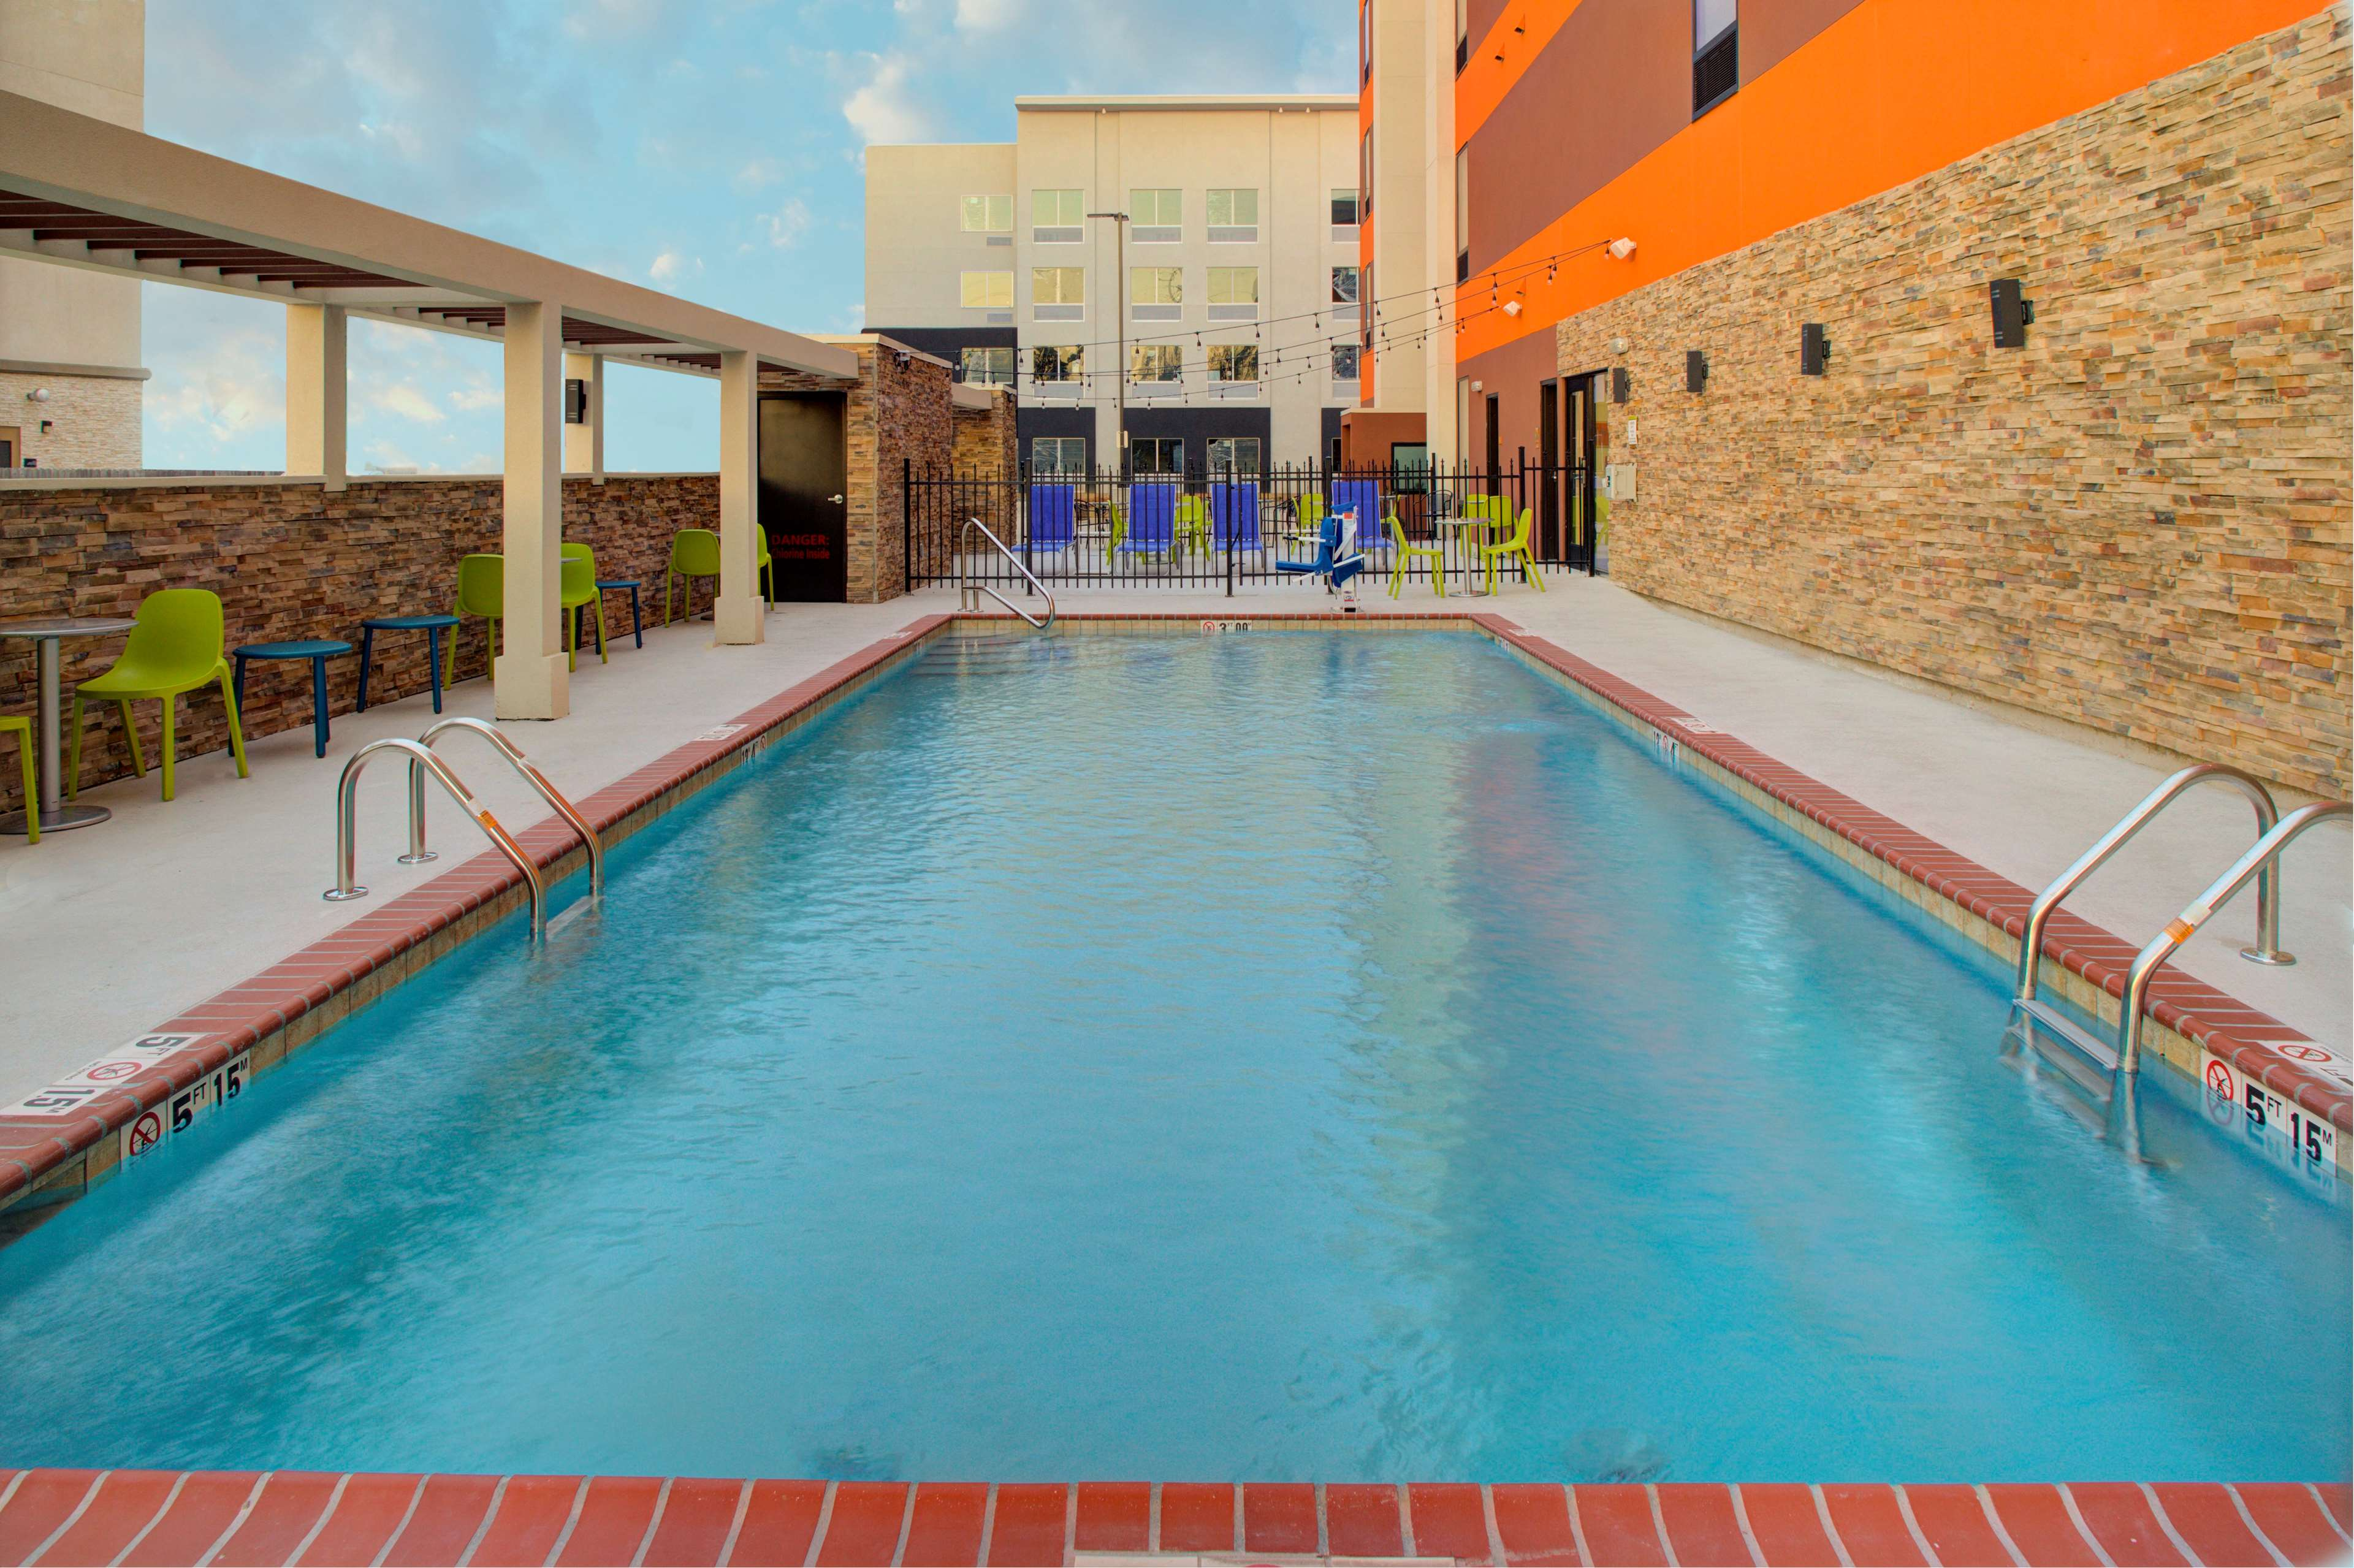 Home2 Suites by Hilton Lake Charles image 7